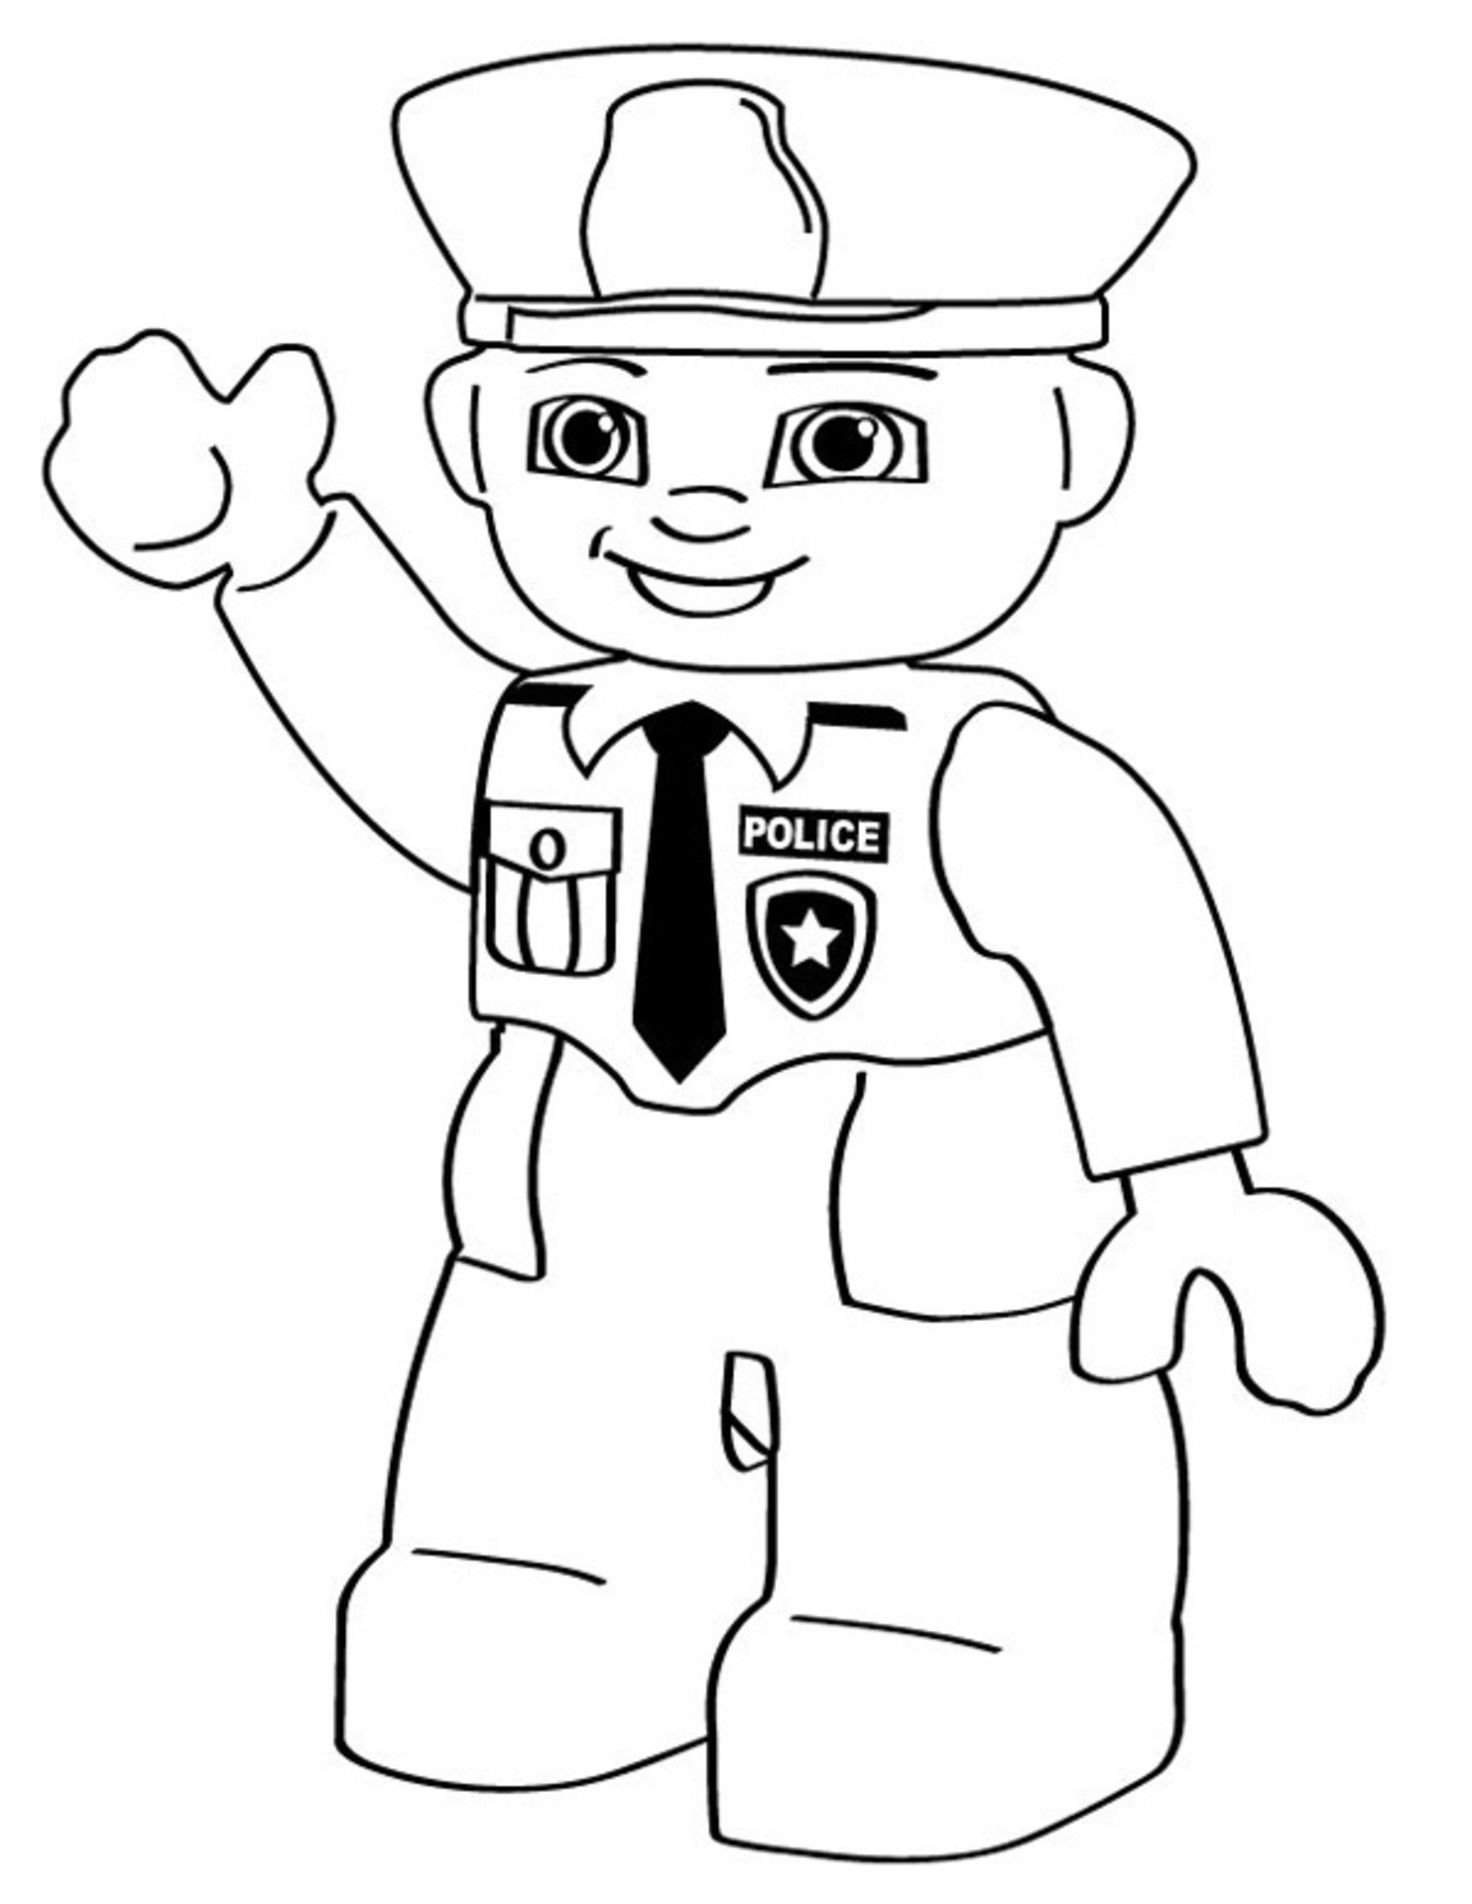 Cartoon coloring pages | Pinterest